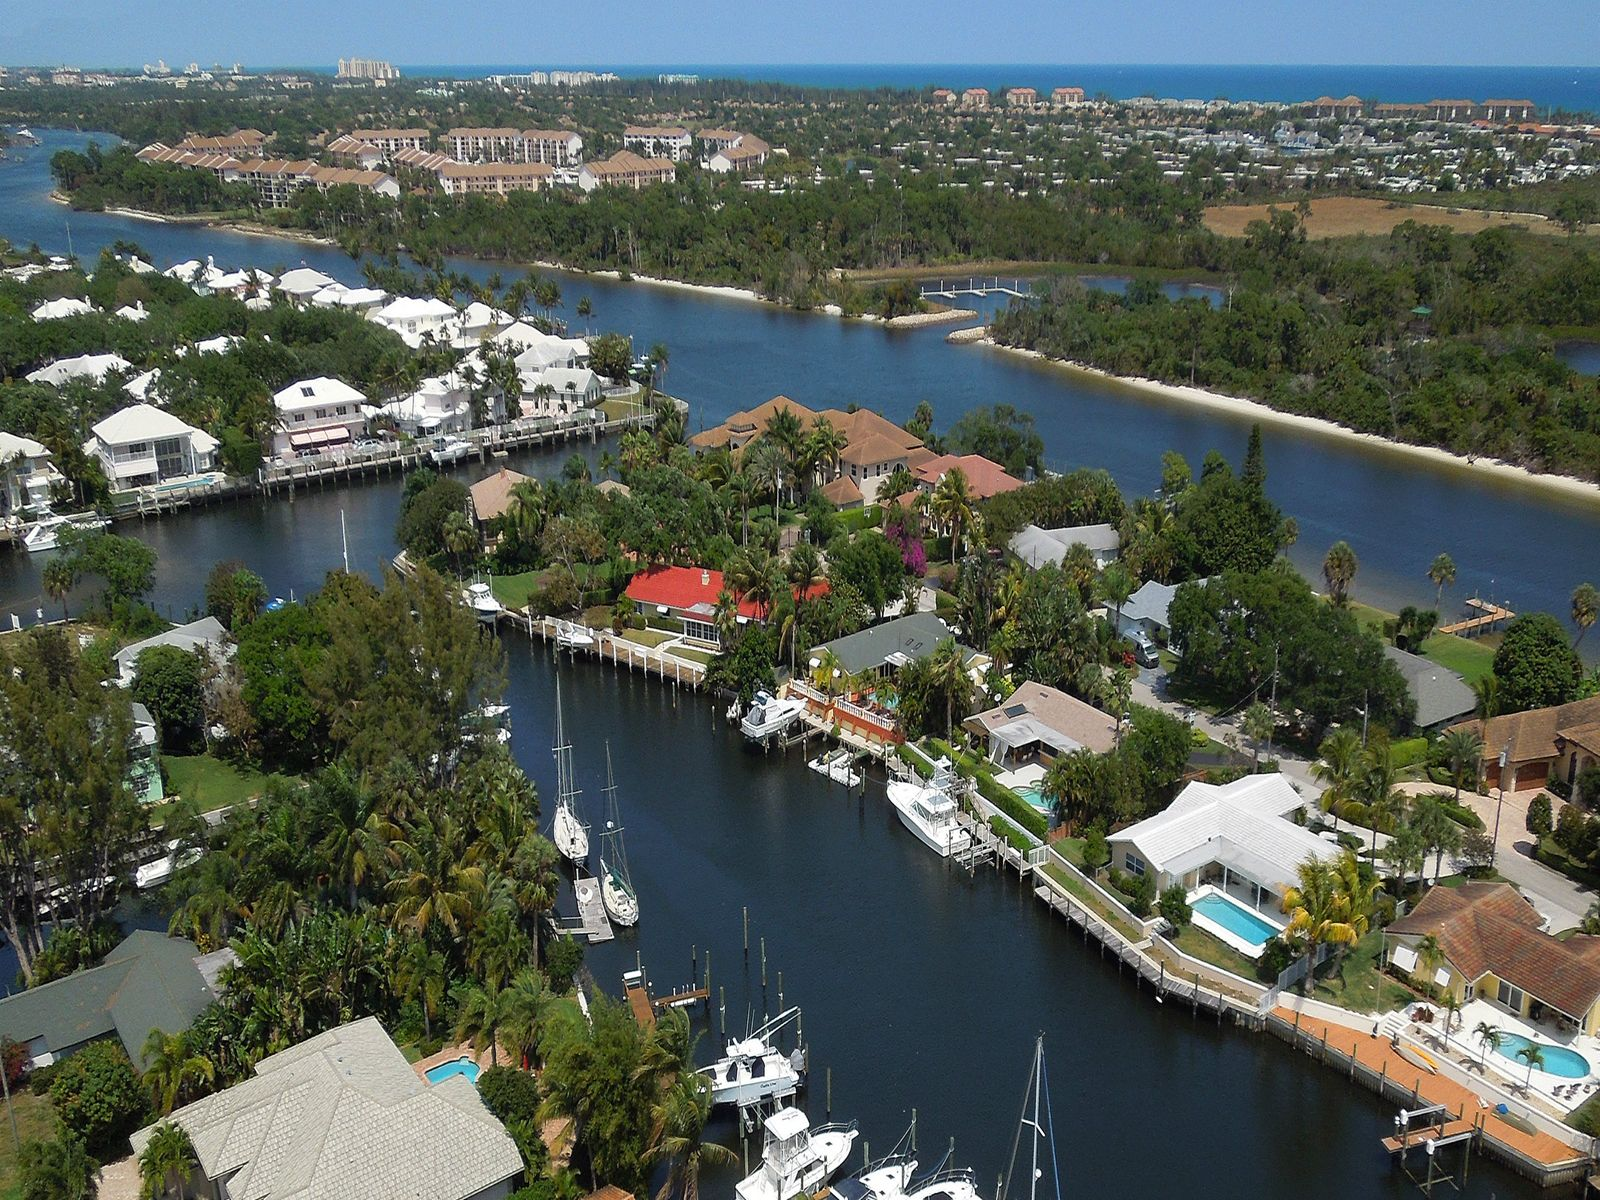 Exceptional Waterfront, West Palm Beach FL Single Family Home - Palm Beach Real Estate